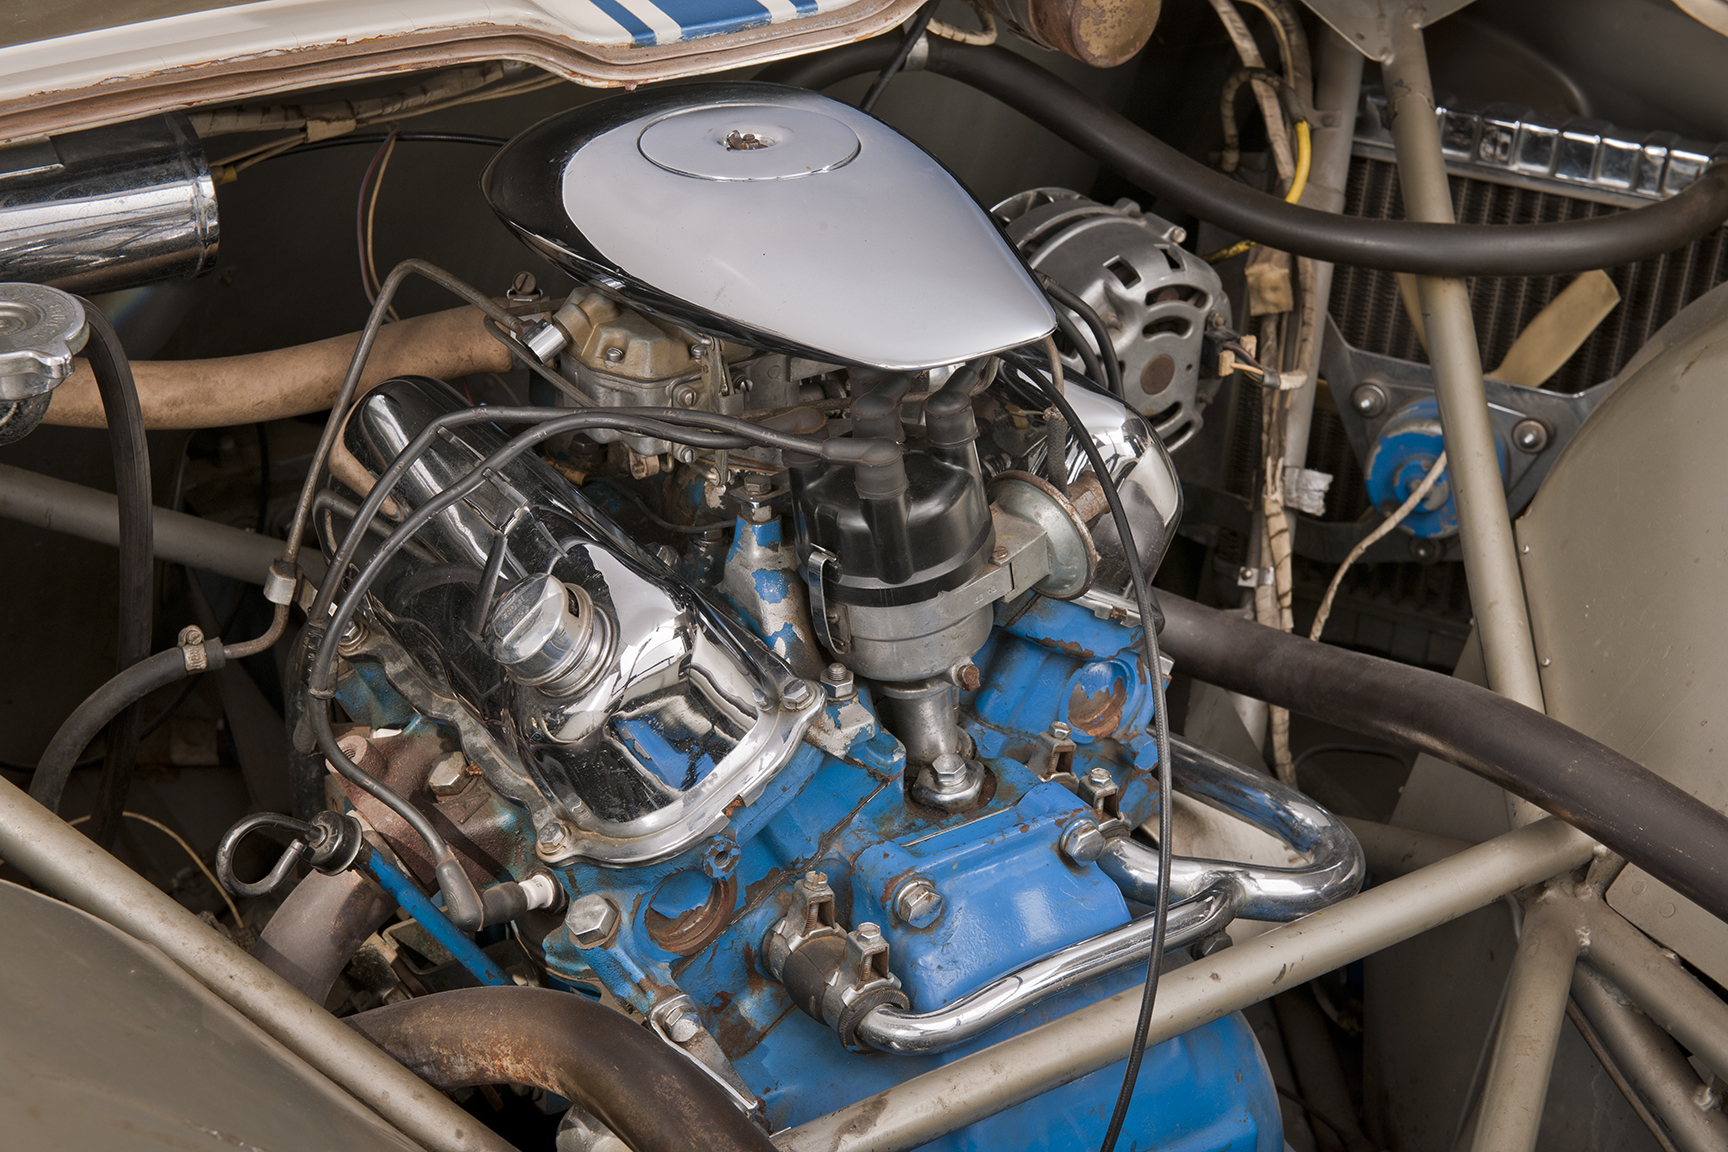 1962 Ford Mustang (Mustang I) engine